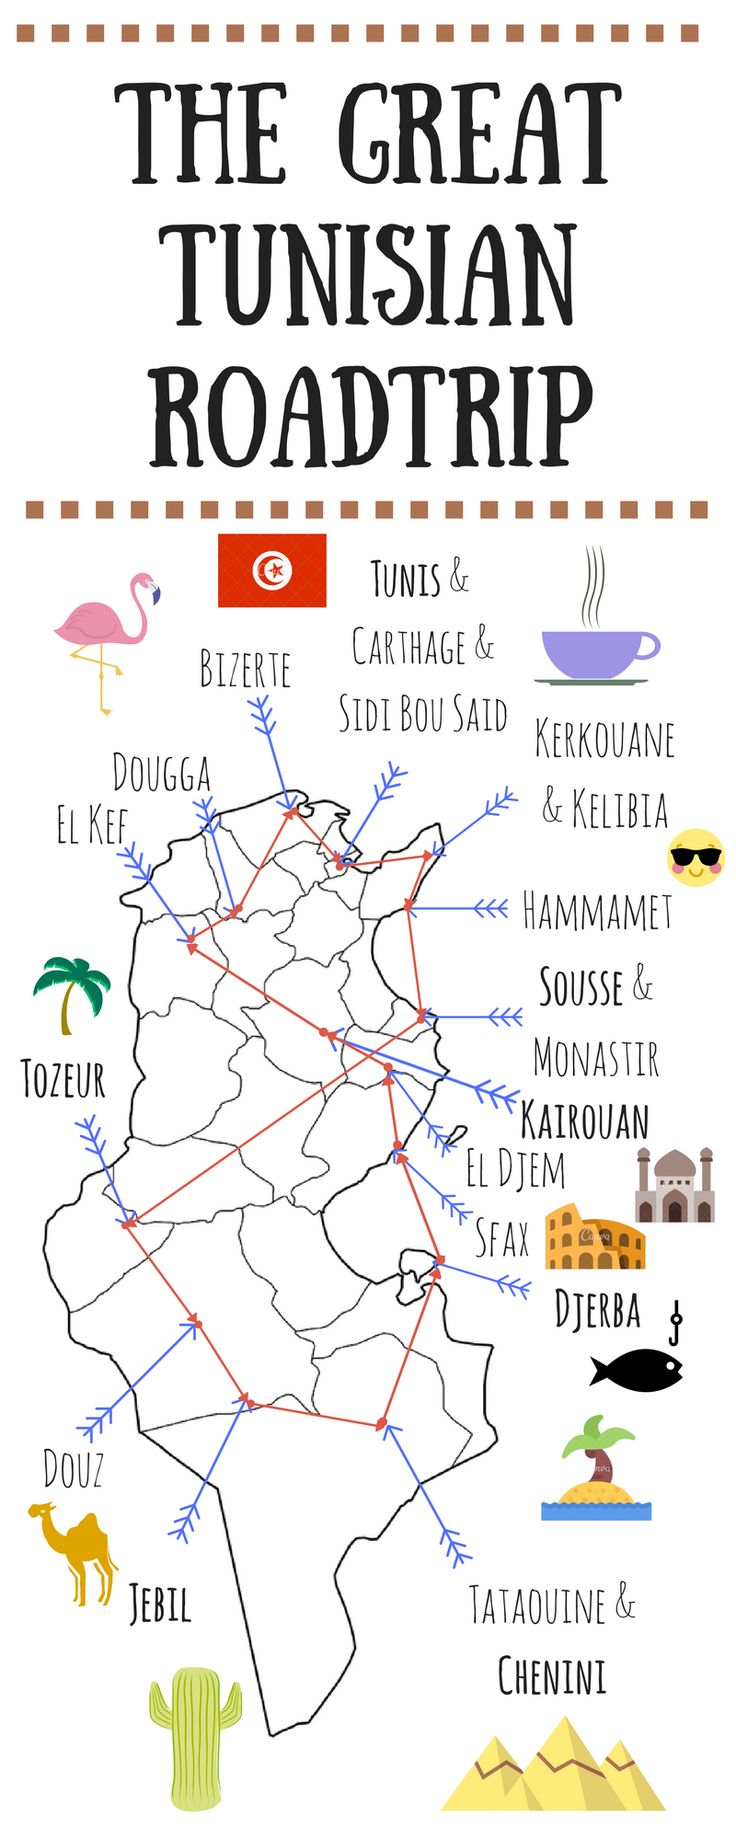 The Great Tunisian Roadtrip : what to visit in Tunisia, tips, reviews, stories for various cities and villages